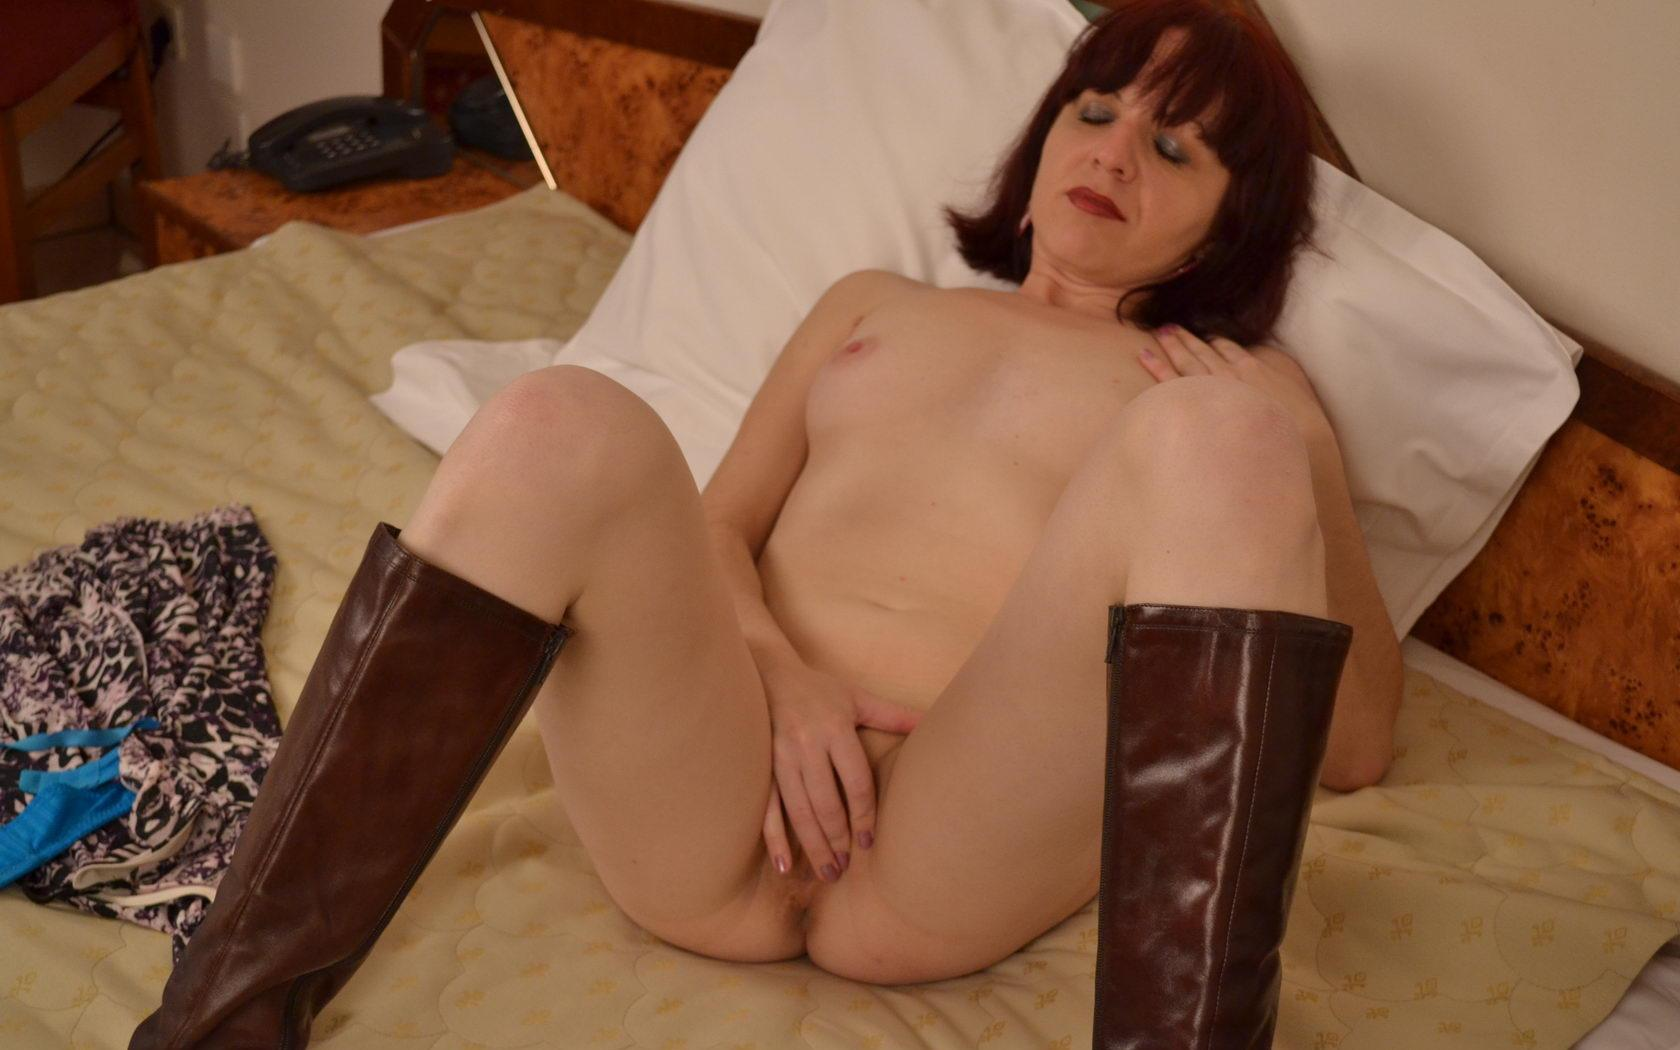 Rose a horny granny is very wet and lonely tonight